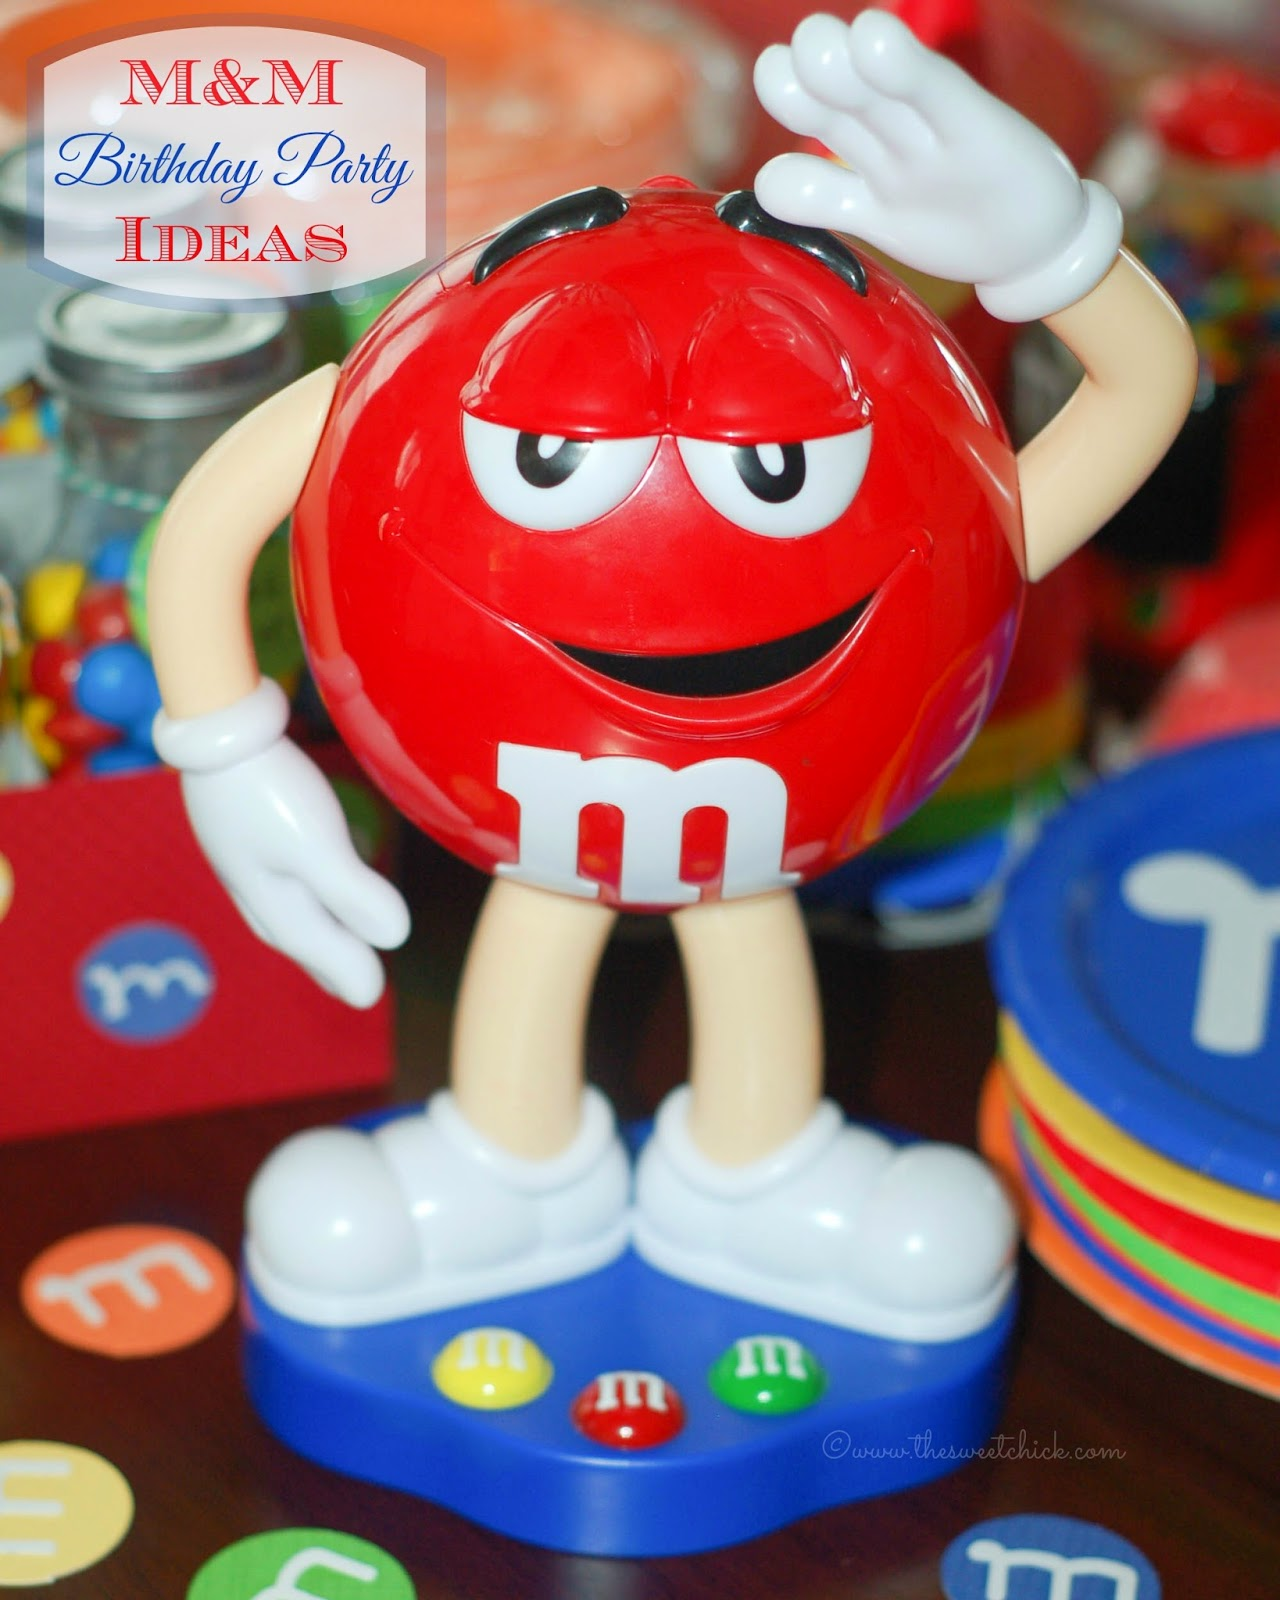 M&M Birthday Party Ideas by The Sweet Chick